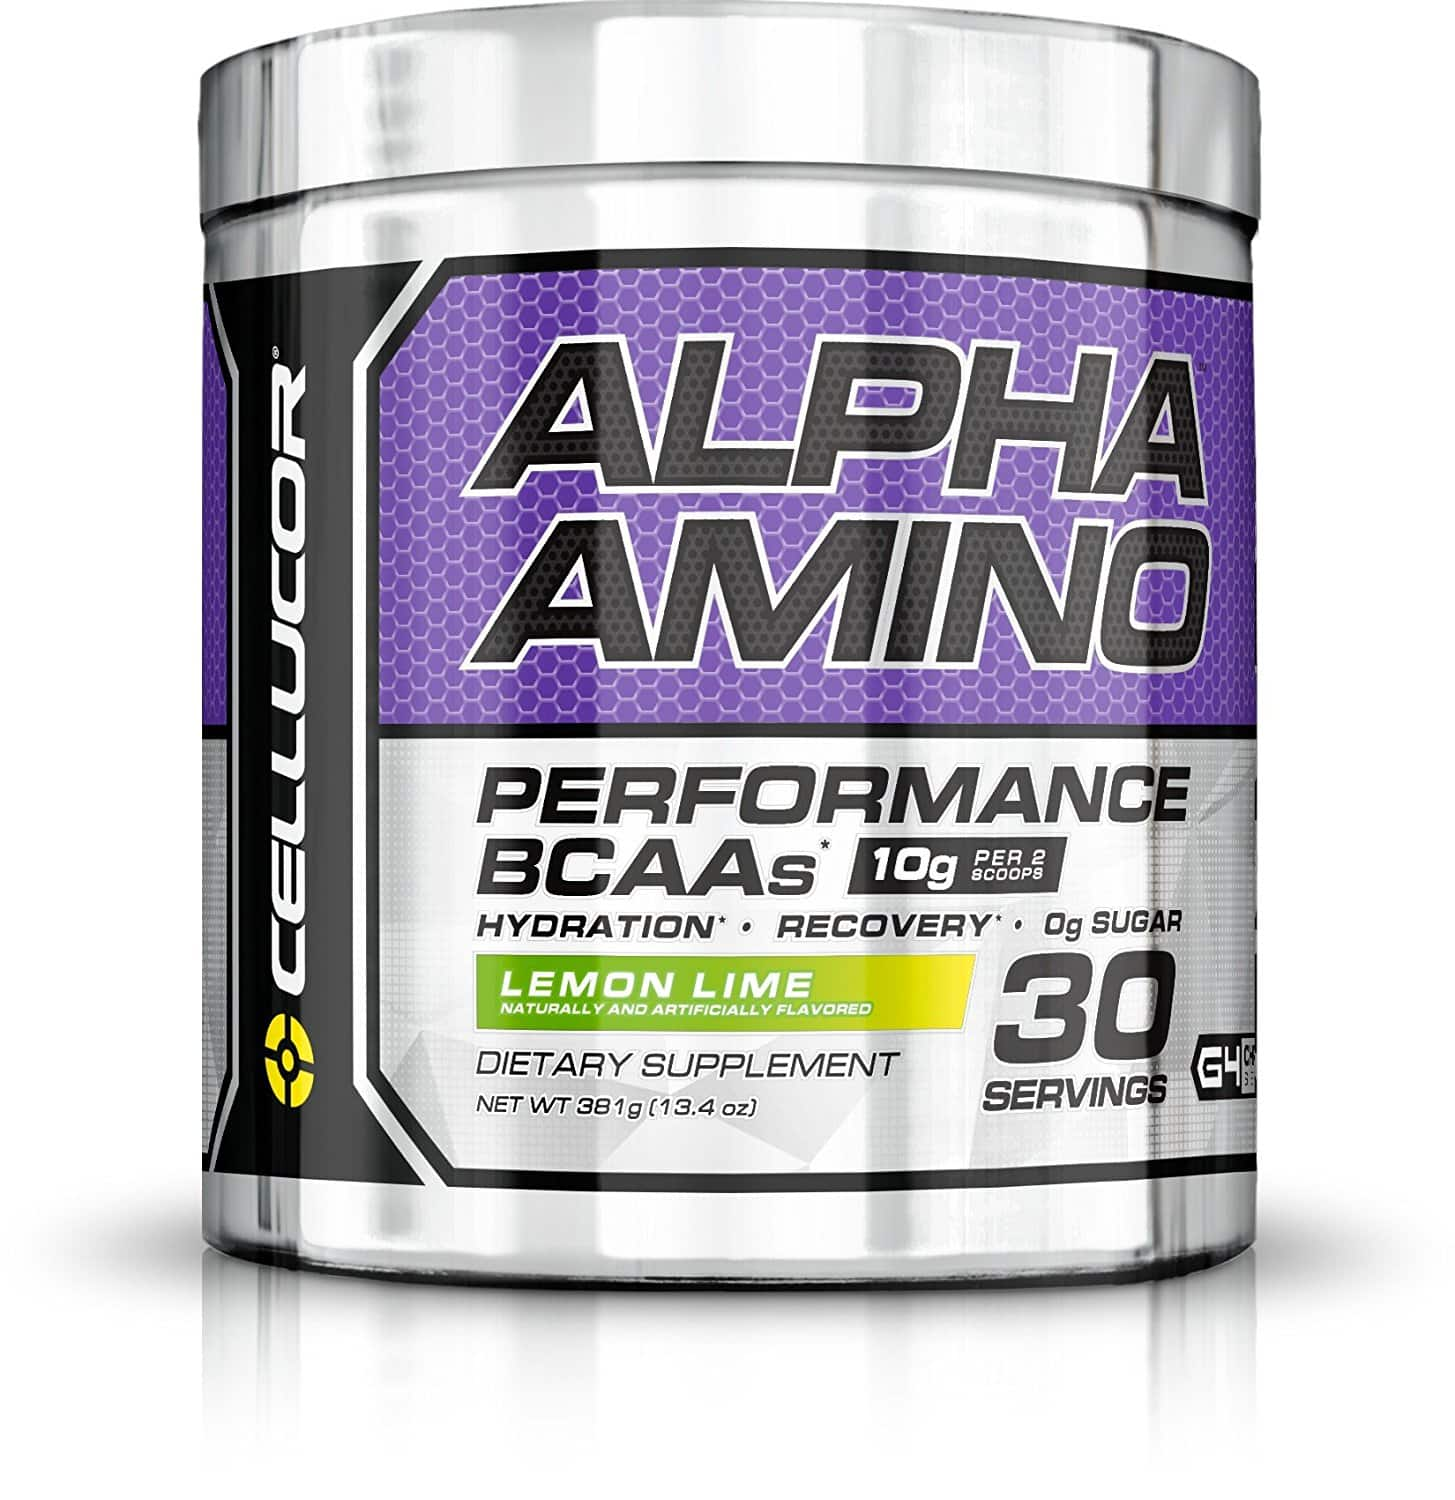 BOGO Cellucor Alpha Amino Performance BCAAs- 2 for $24.99 + Free Shipping